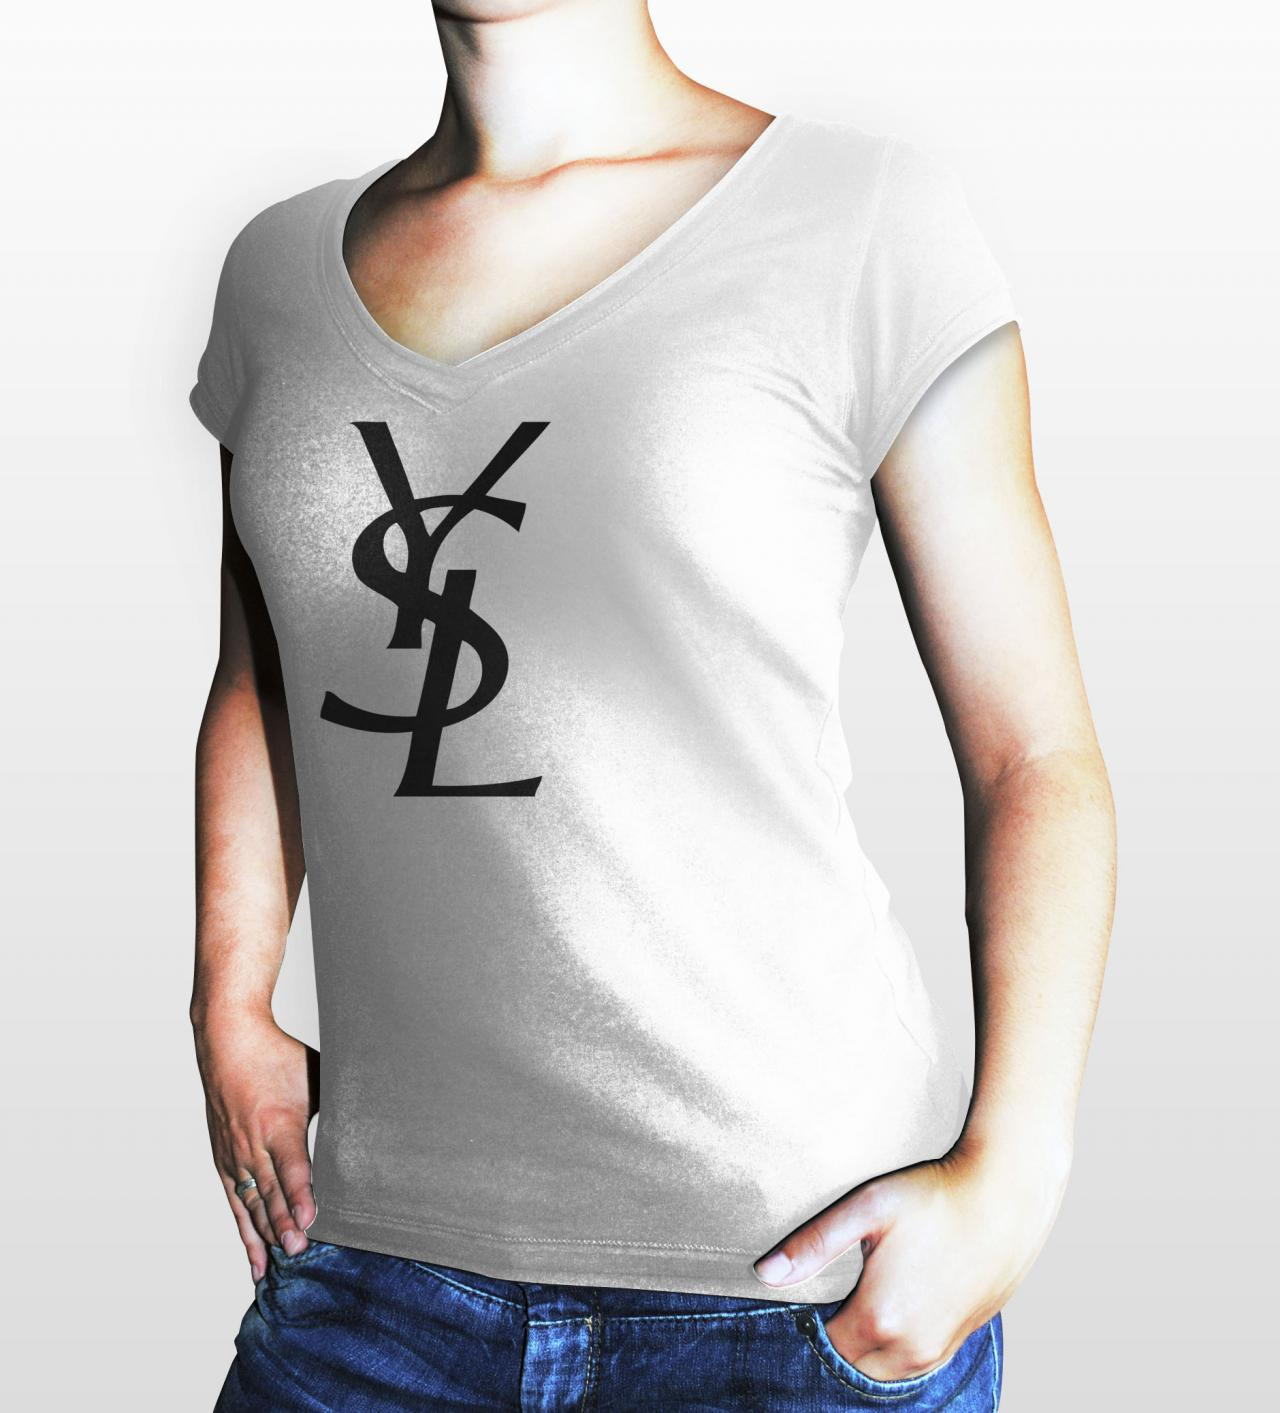 Ysl yves saint laurent paris women white gildan t shirt on for Saint laurent paris t shirt